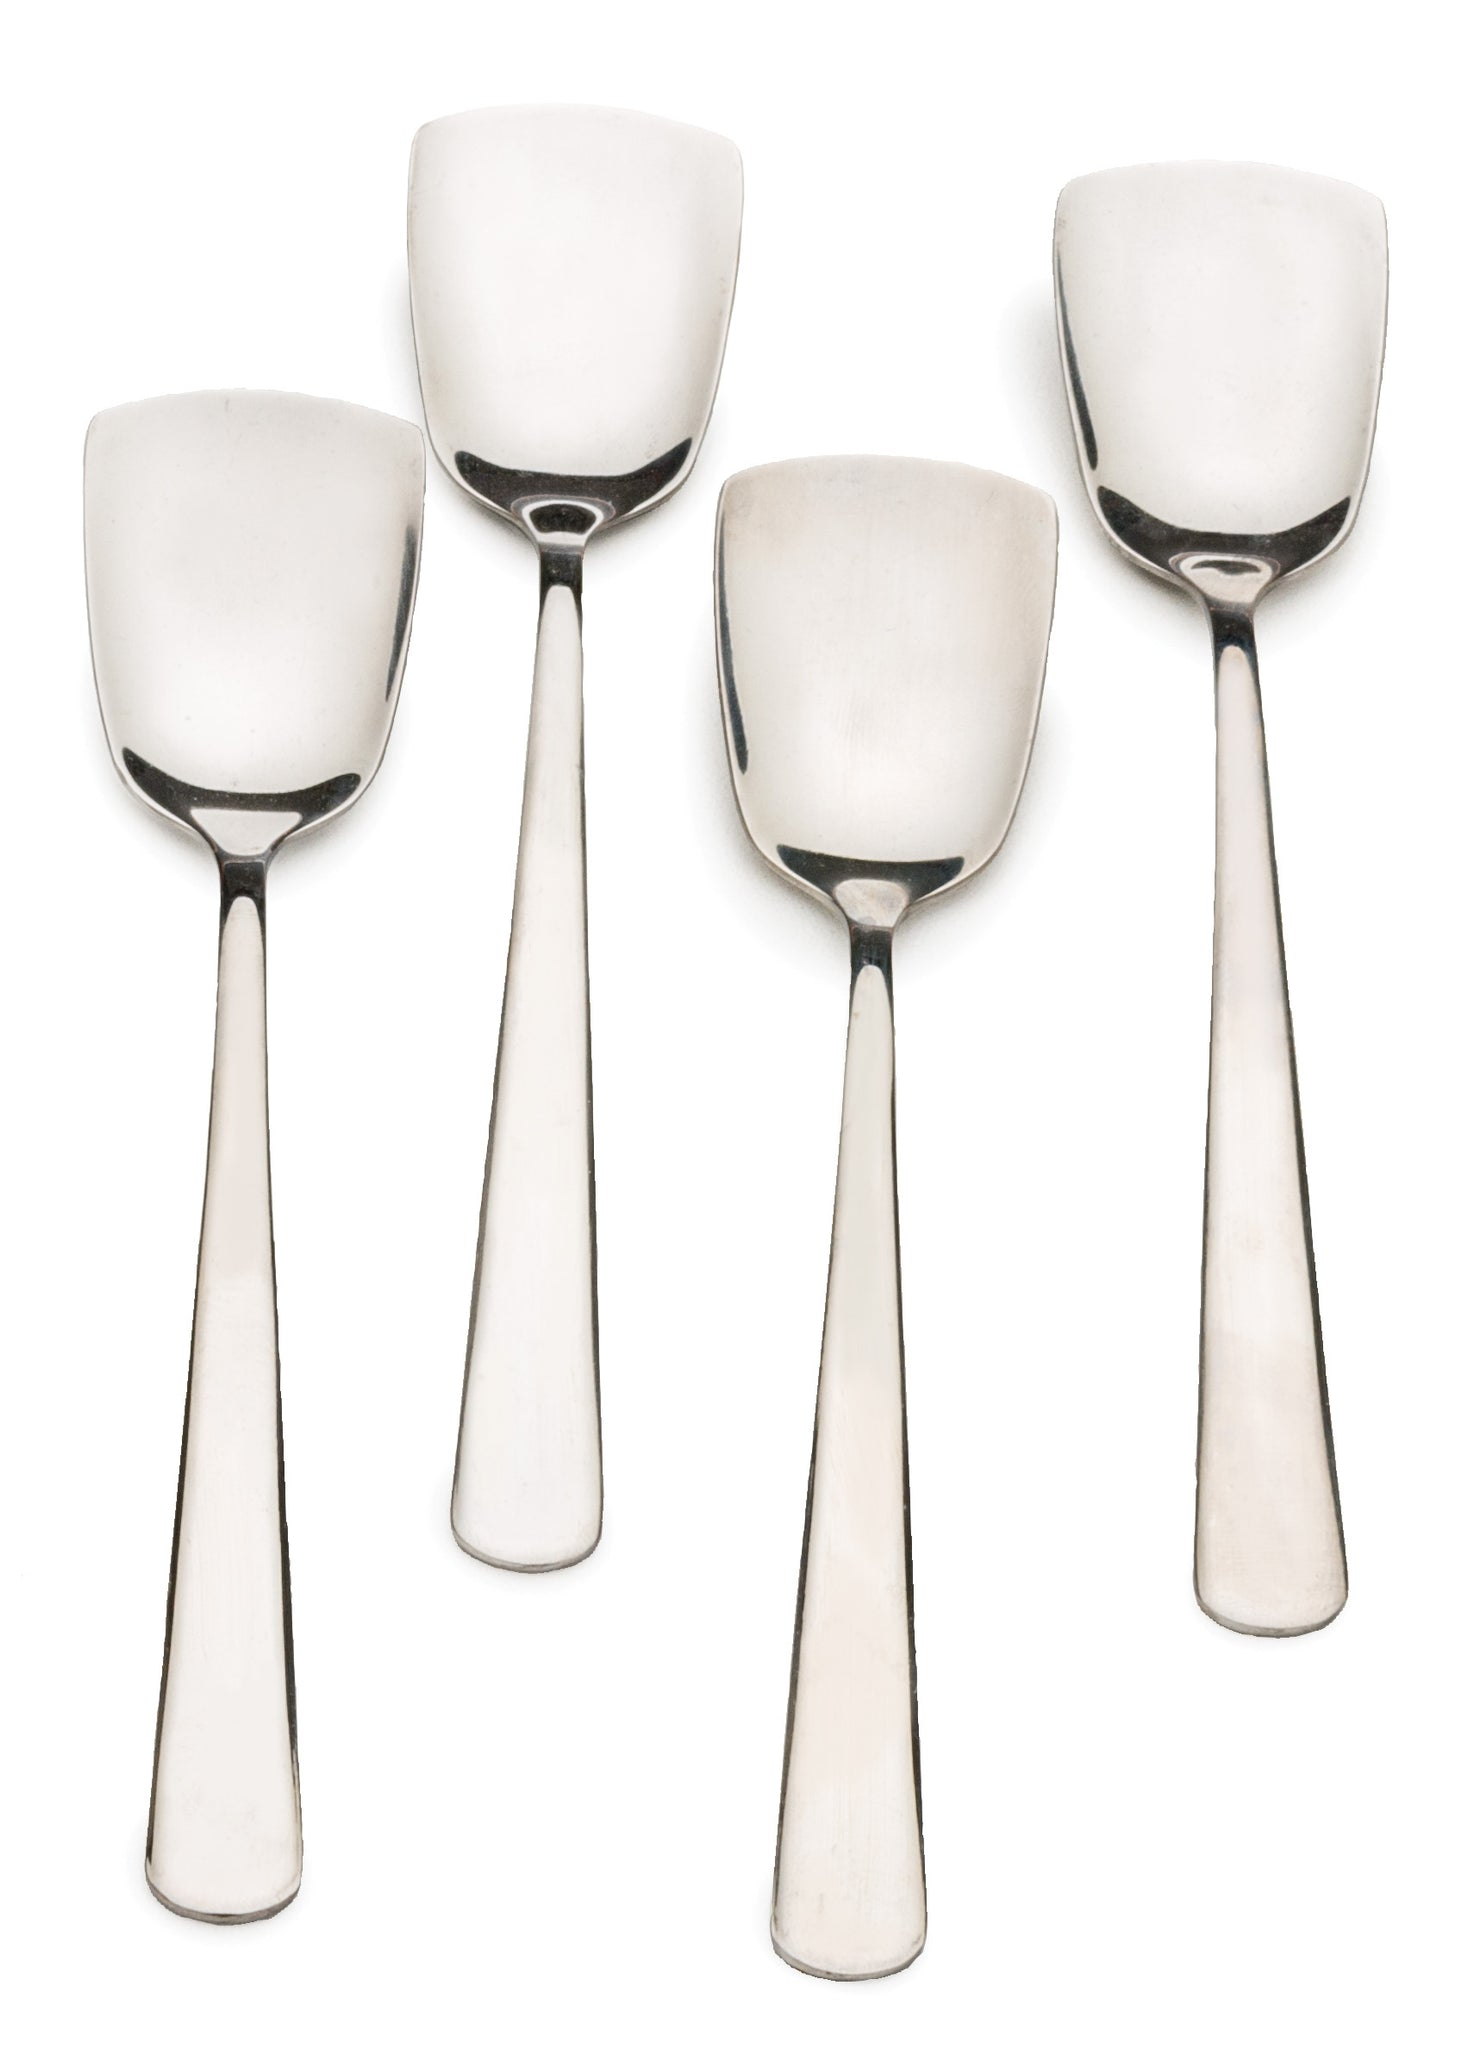 RSVP Ice Cream Spoons, Stainless Steel, Set of 4